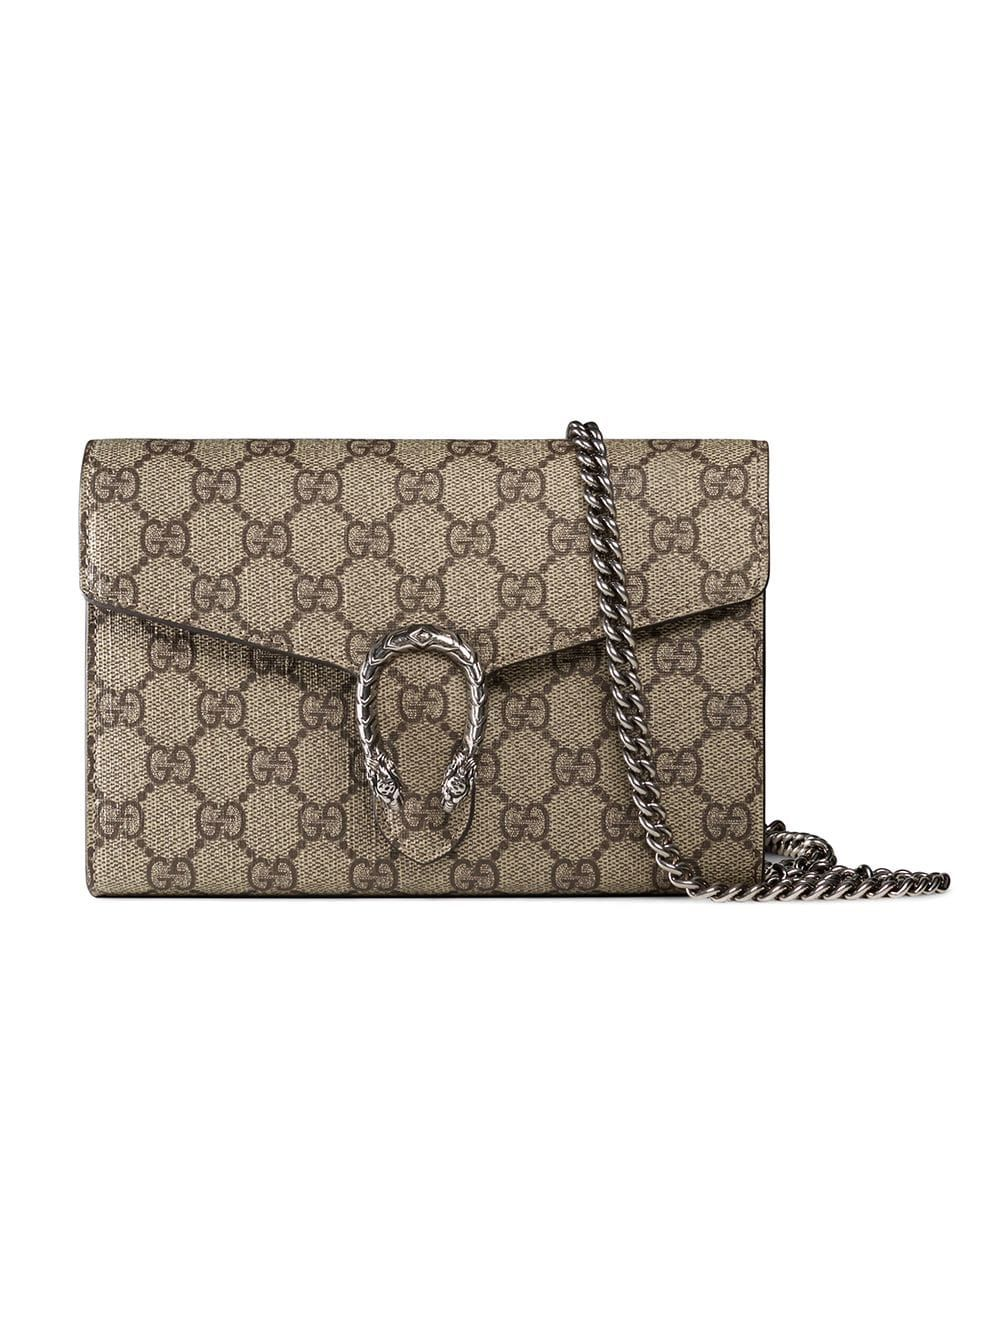 6aadf5727 Gucci Dionysus GG Supreme chain wallet - Neutrals in 2019   Products ...